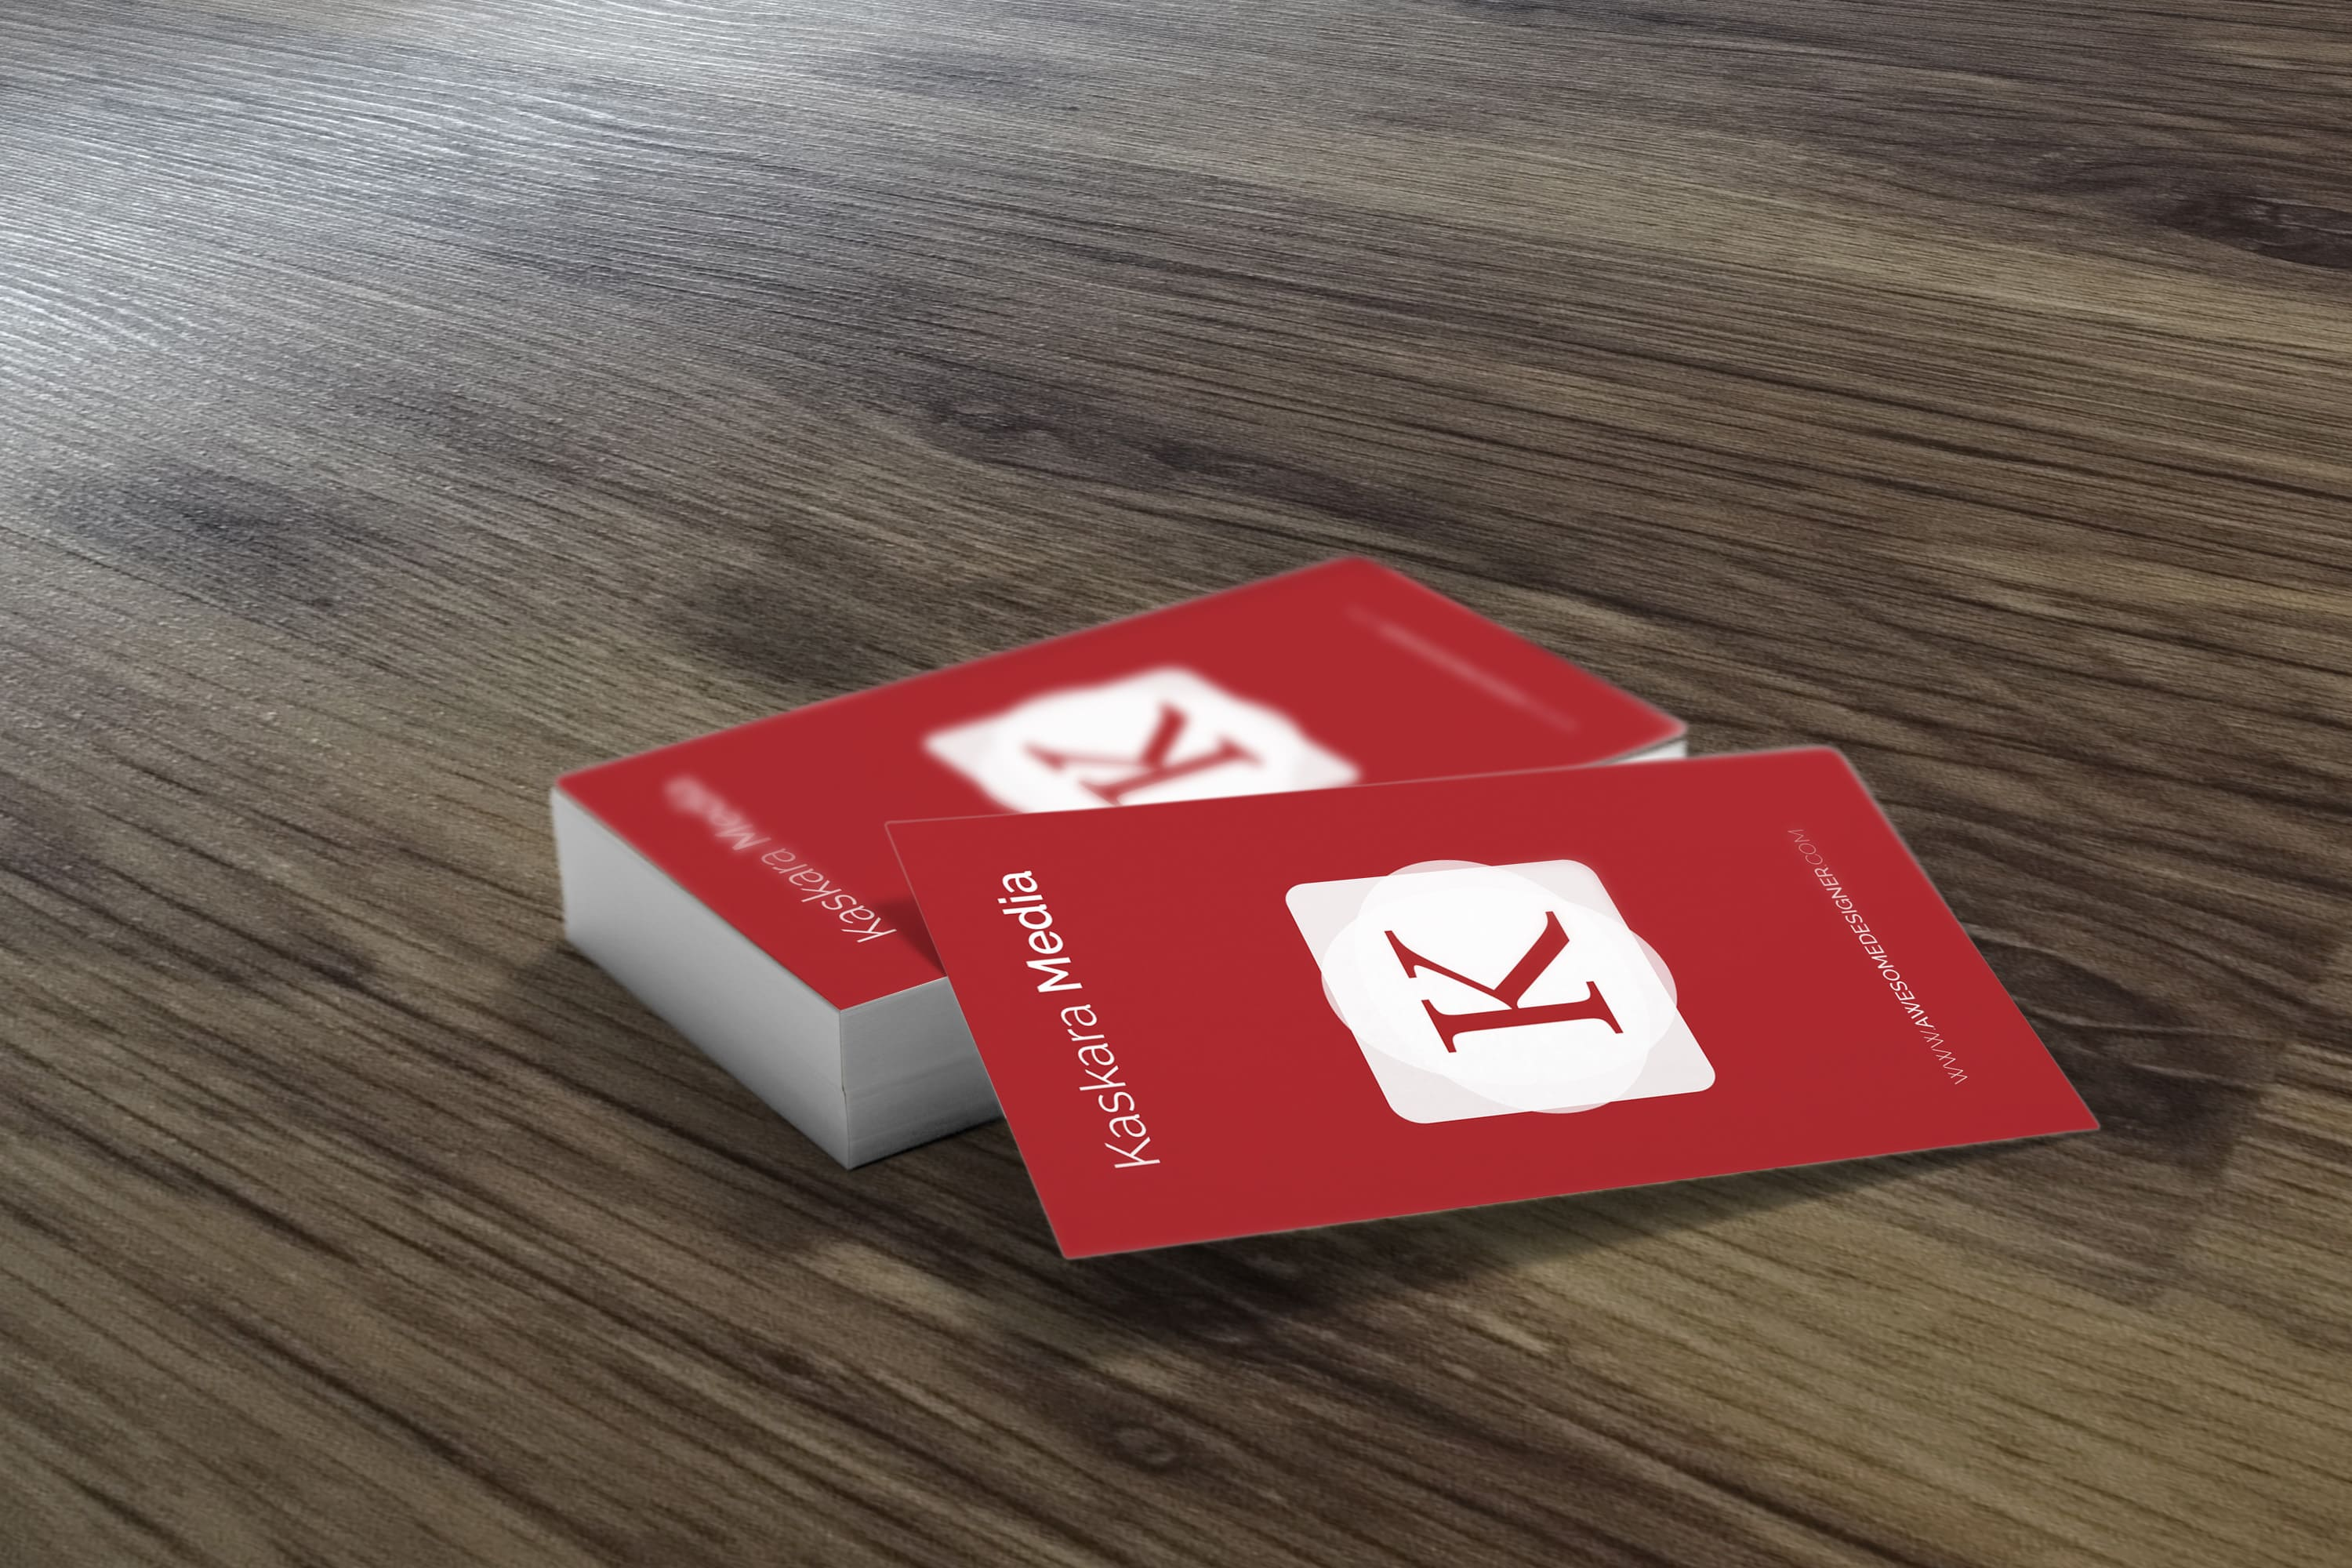 https://cdn.4over4.com/assets/products/64/silk-laminated-business-cards-2.jpg